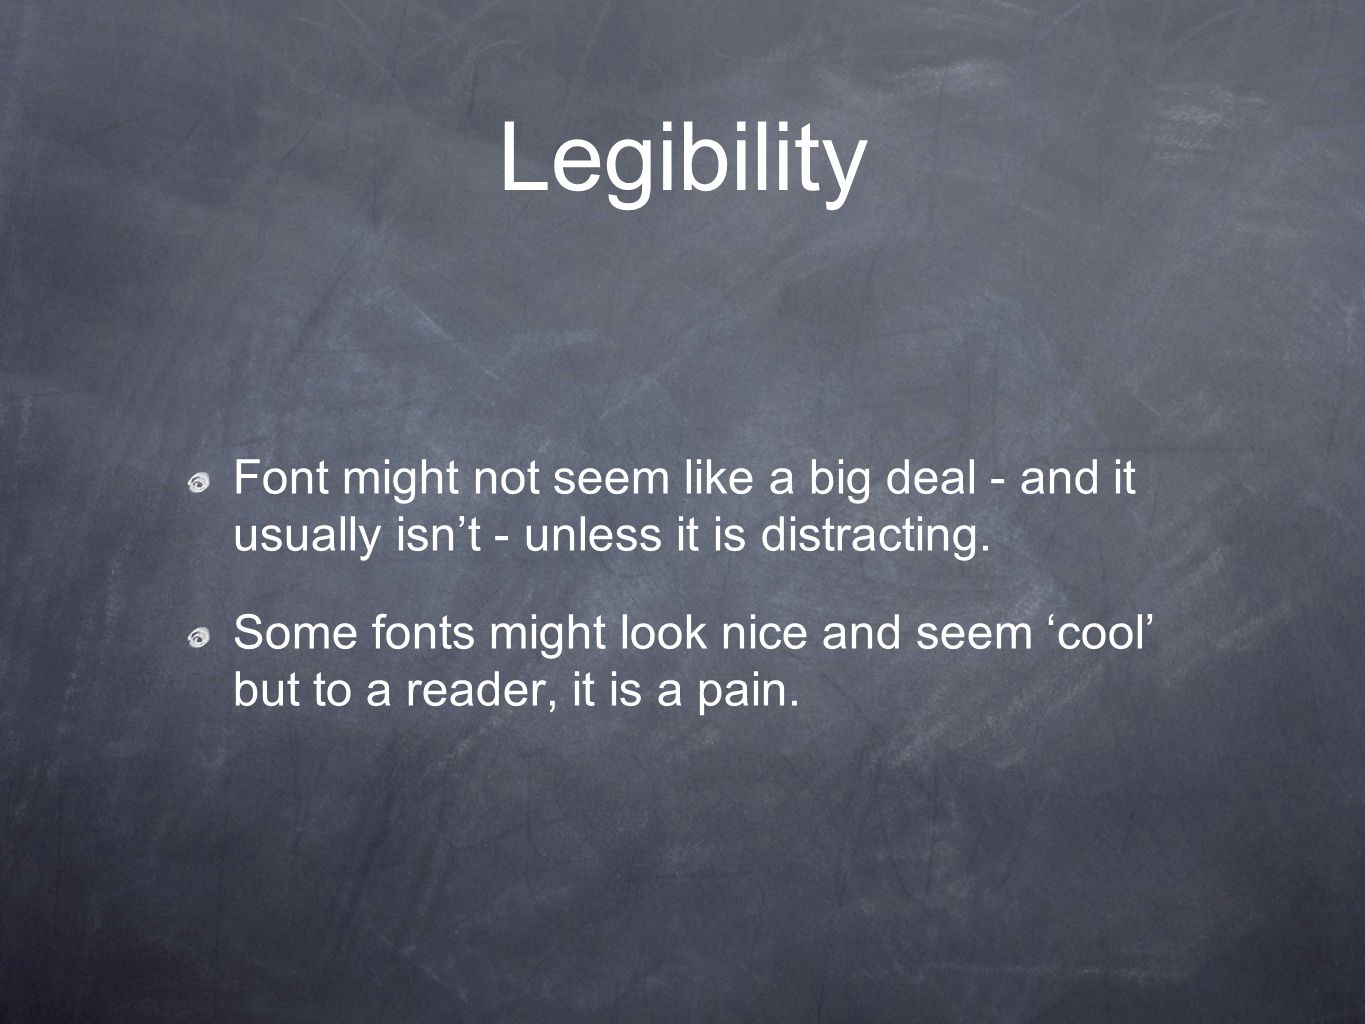 Legibility Font might not seem like a big deal - and it usually isnt - unless it is distracting.